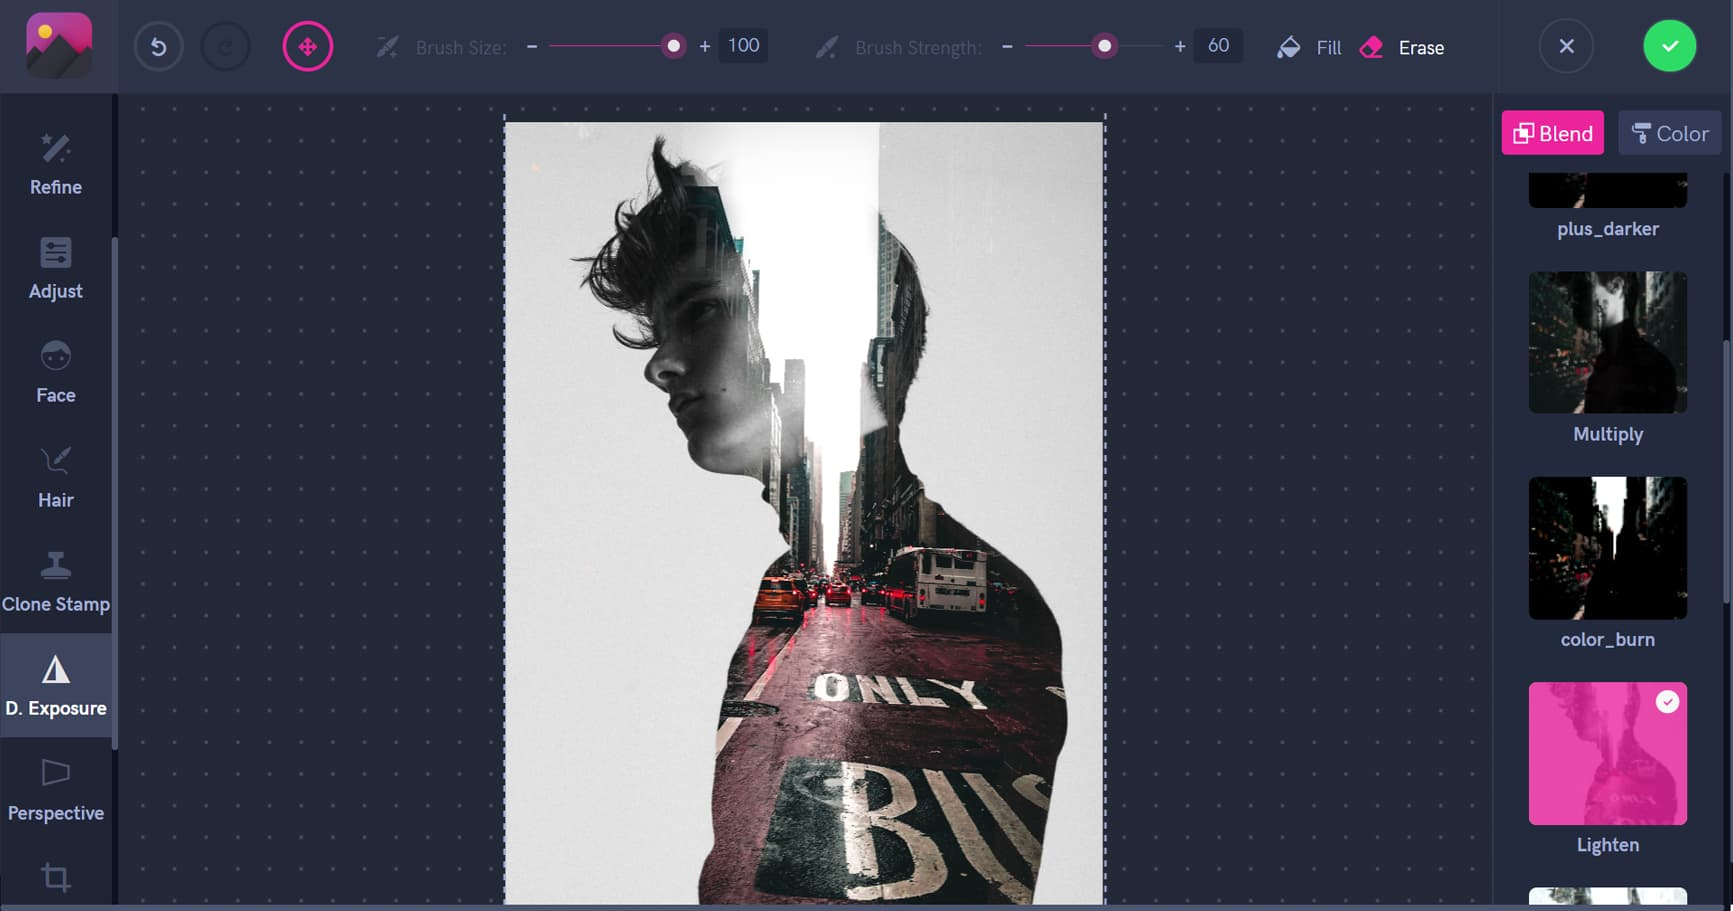 Double Exposure blending modes, man and the city, Pixomatic screenshot